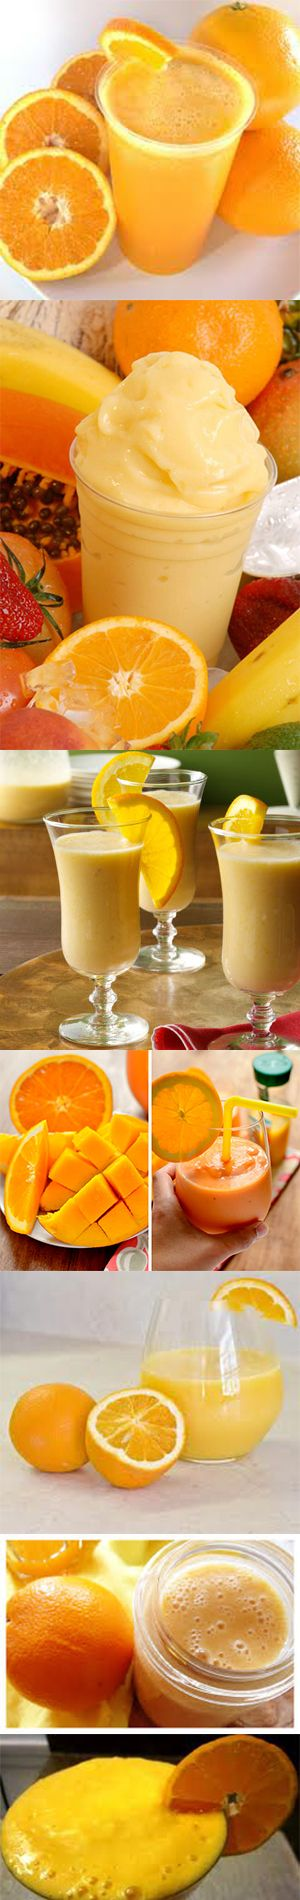 7 Awesome Healthy Orange Smoothie Recipes. Your Body Will Be Grateful. #recipe